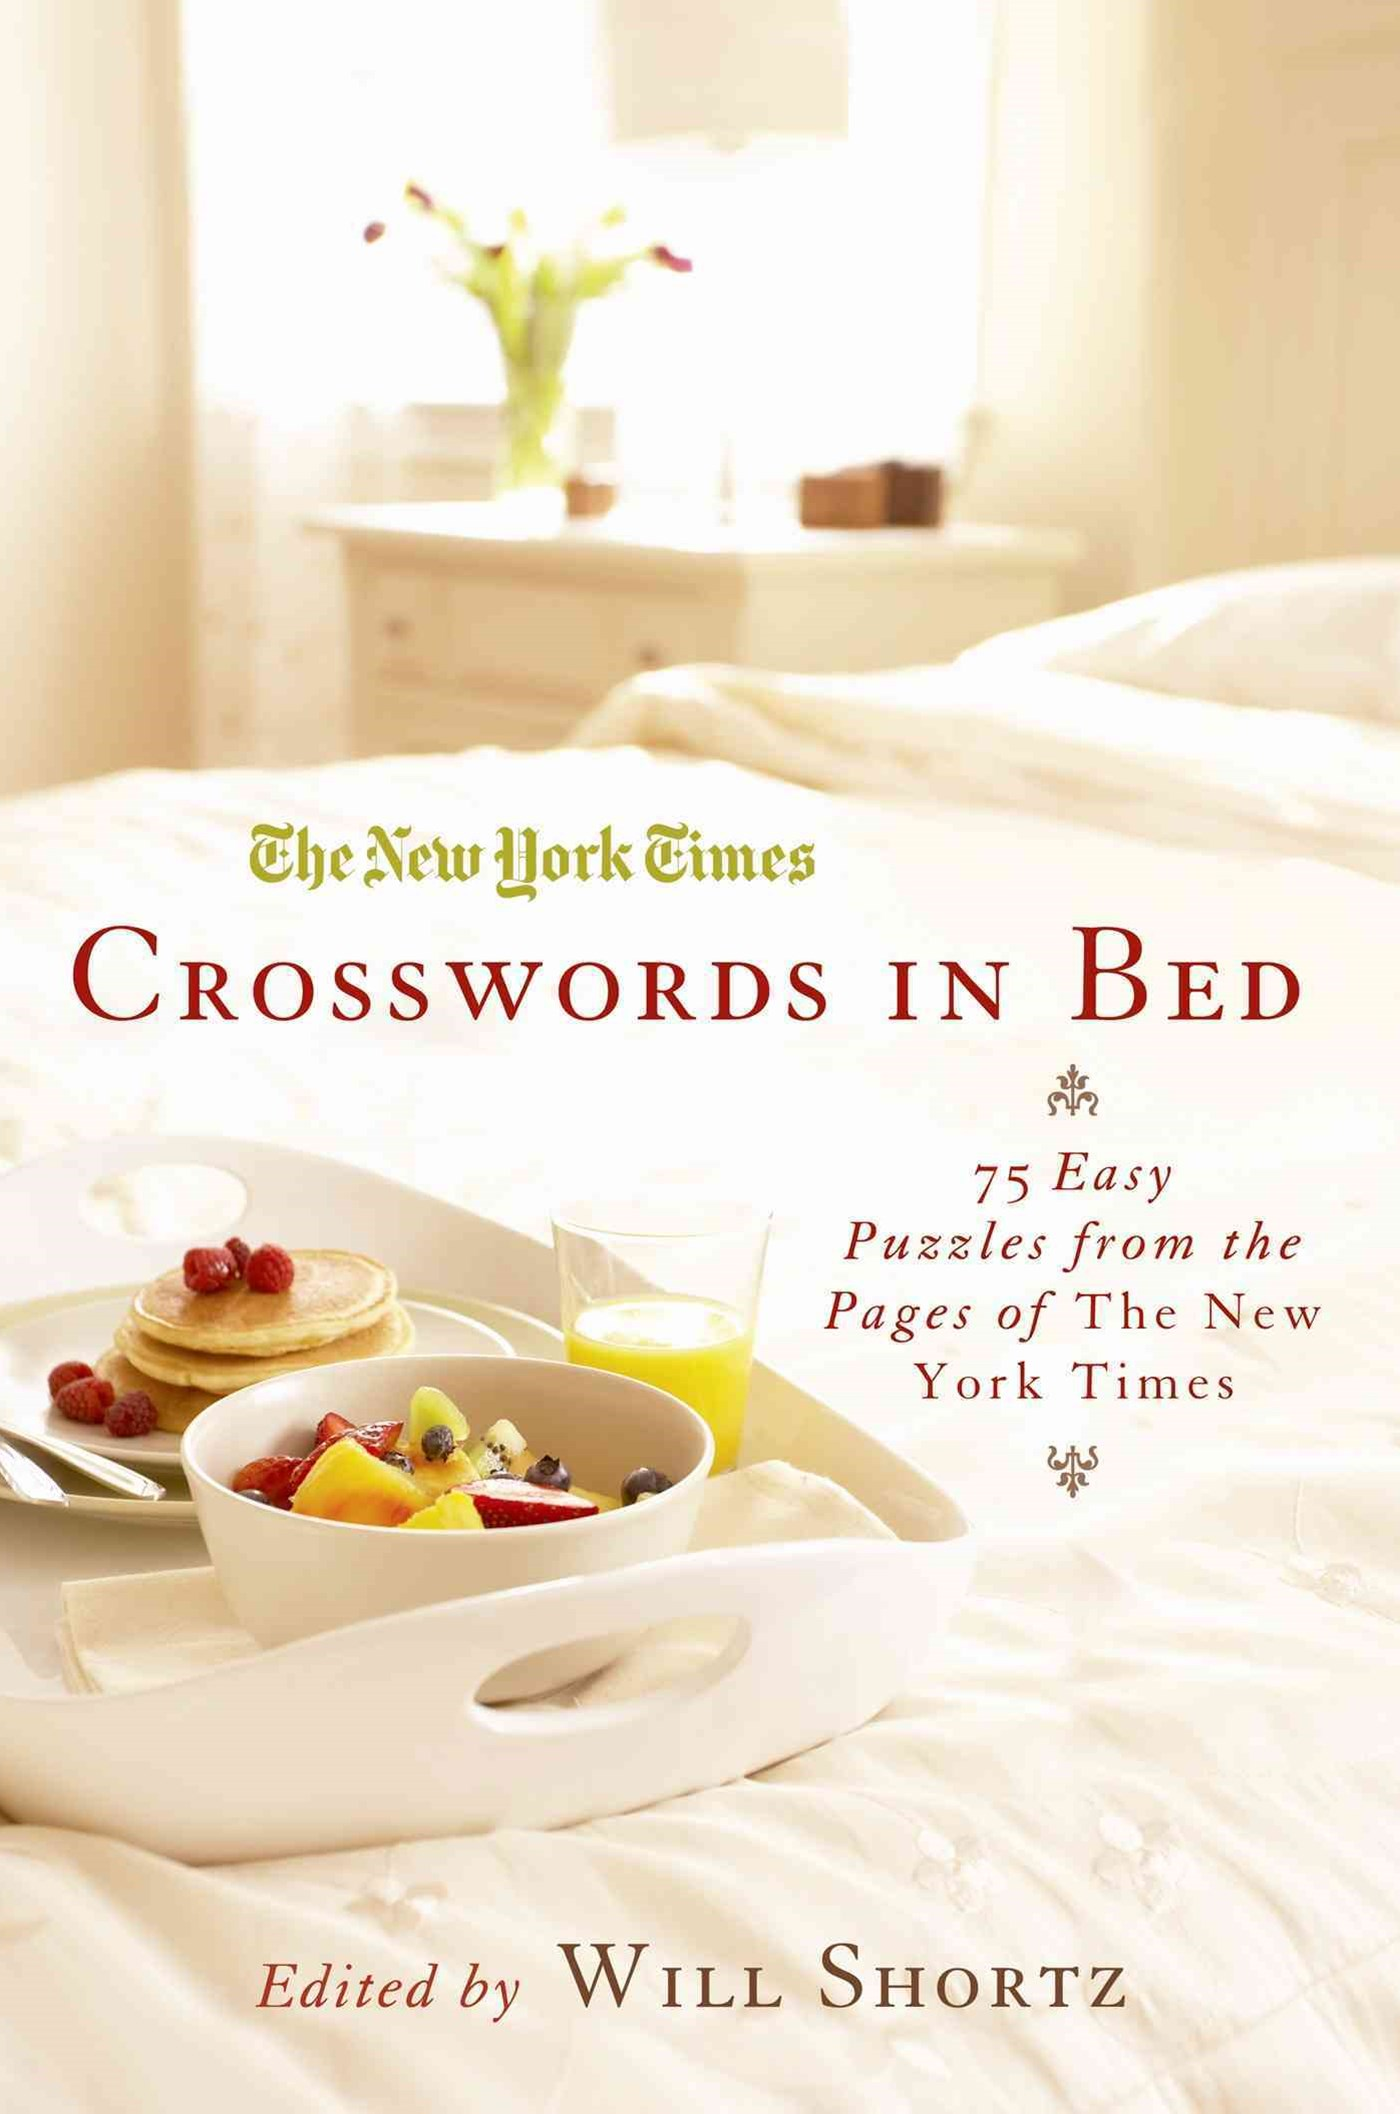 The New York Times Crosswords in Bed